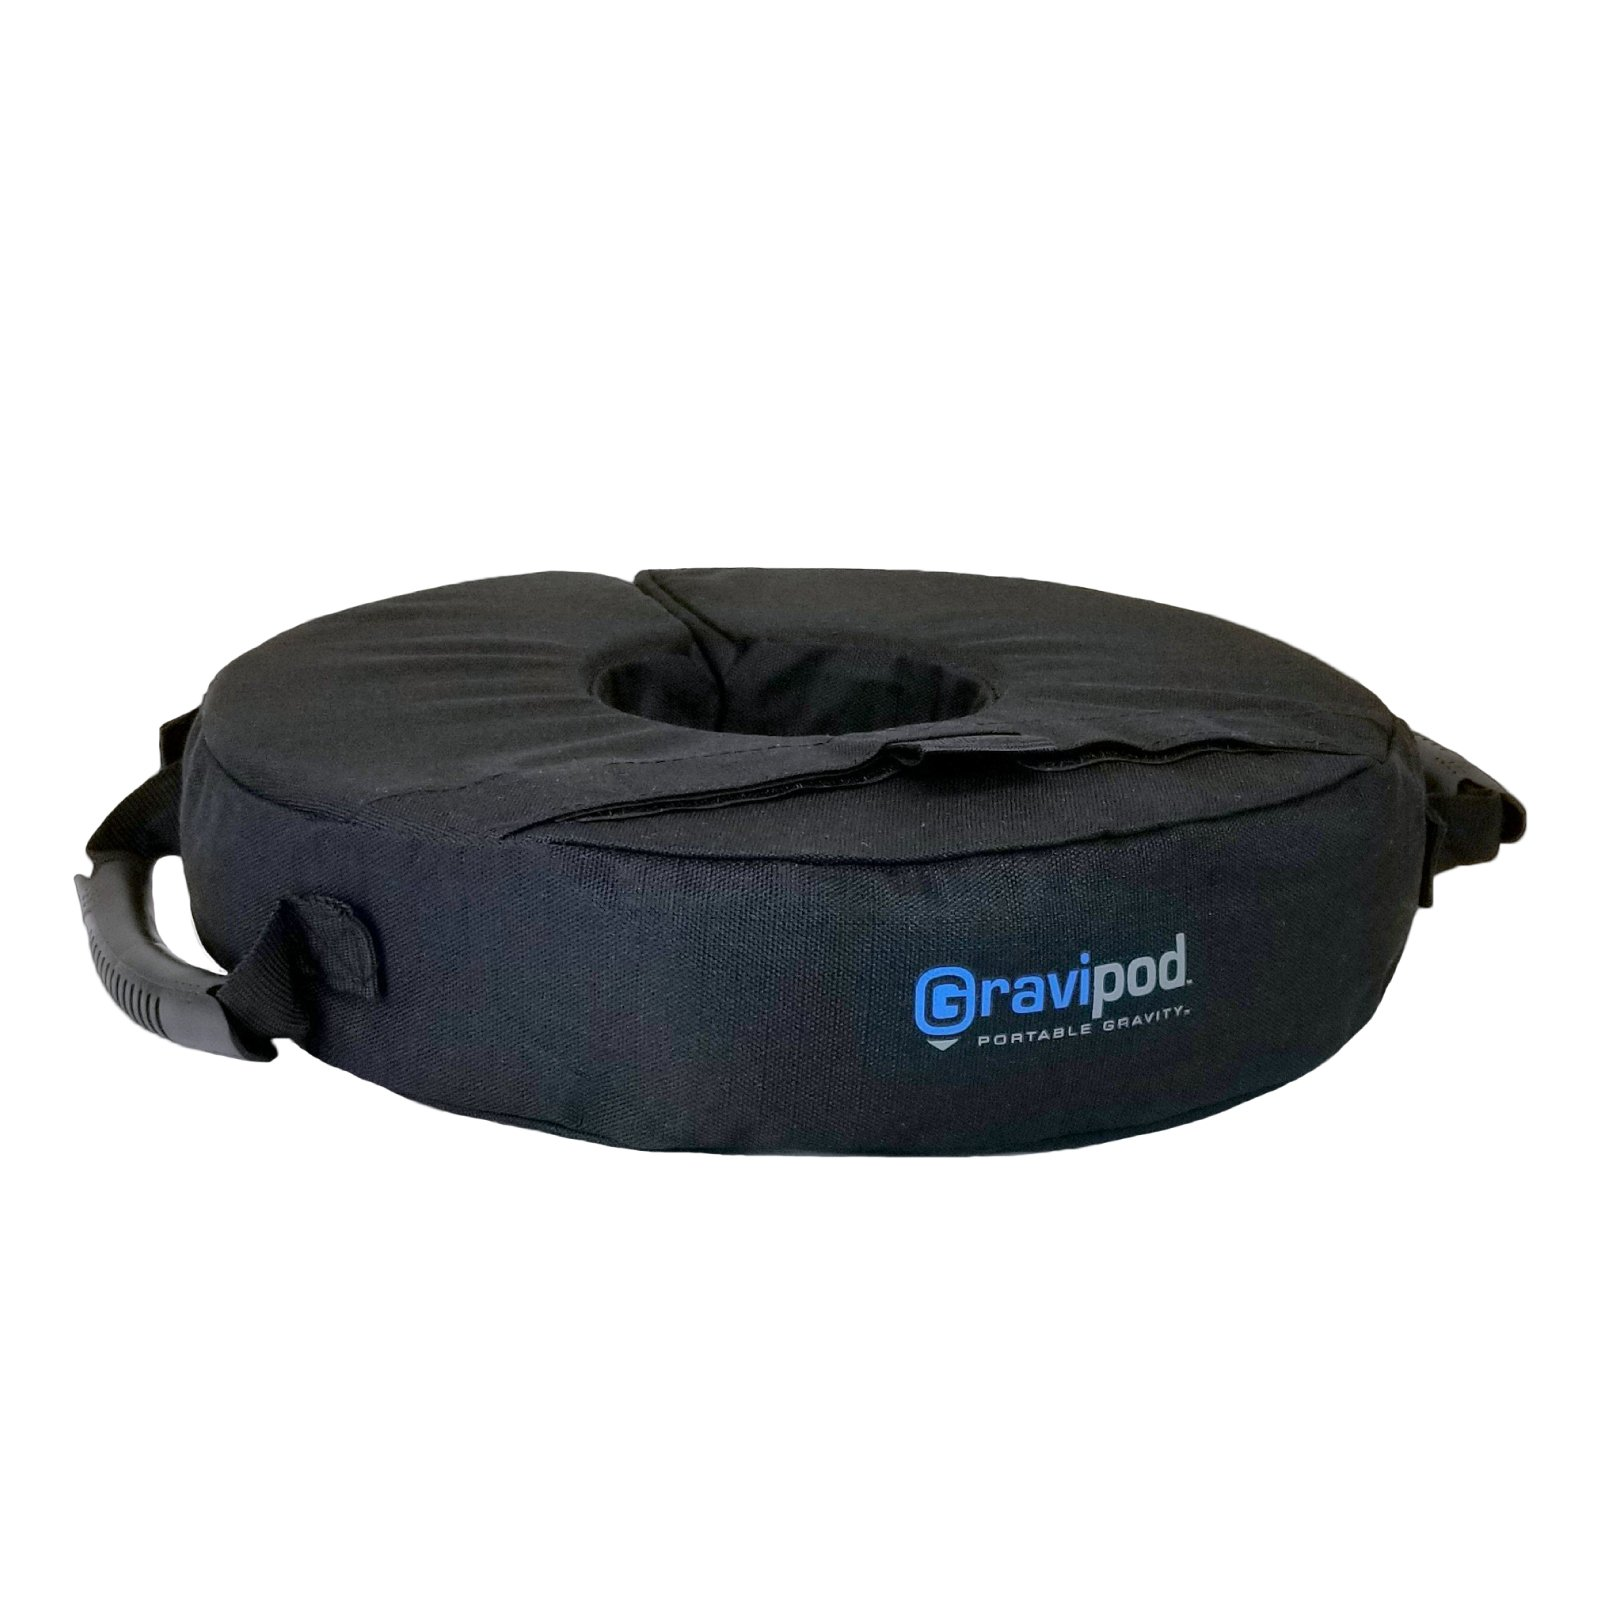 """Gravipod Mini Base Weight Bag, 14"""" Round~Versatile support with split-ring opening and ergonomic handles for any pole, post, stand, AV equipment, or floor lamp~Industrial Ballistic Ripstop Polyester"""